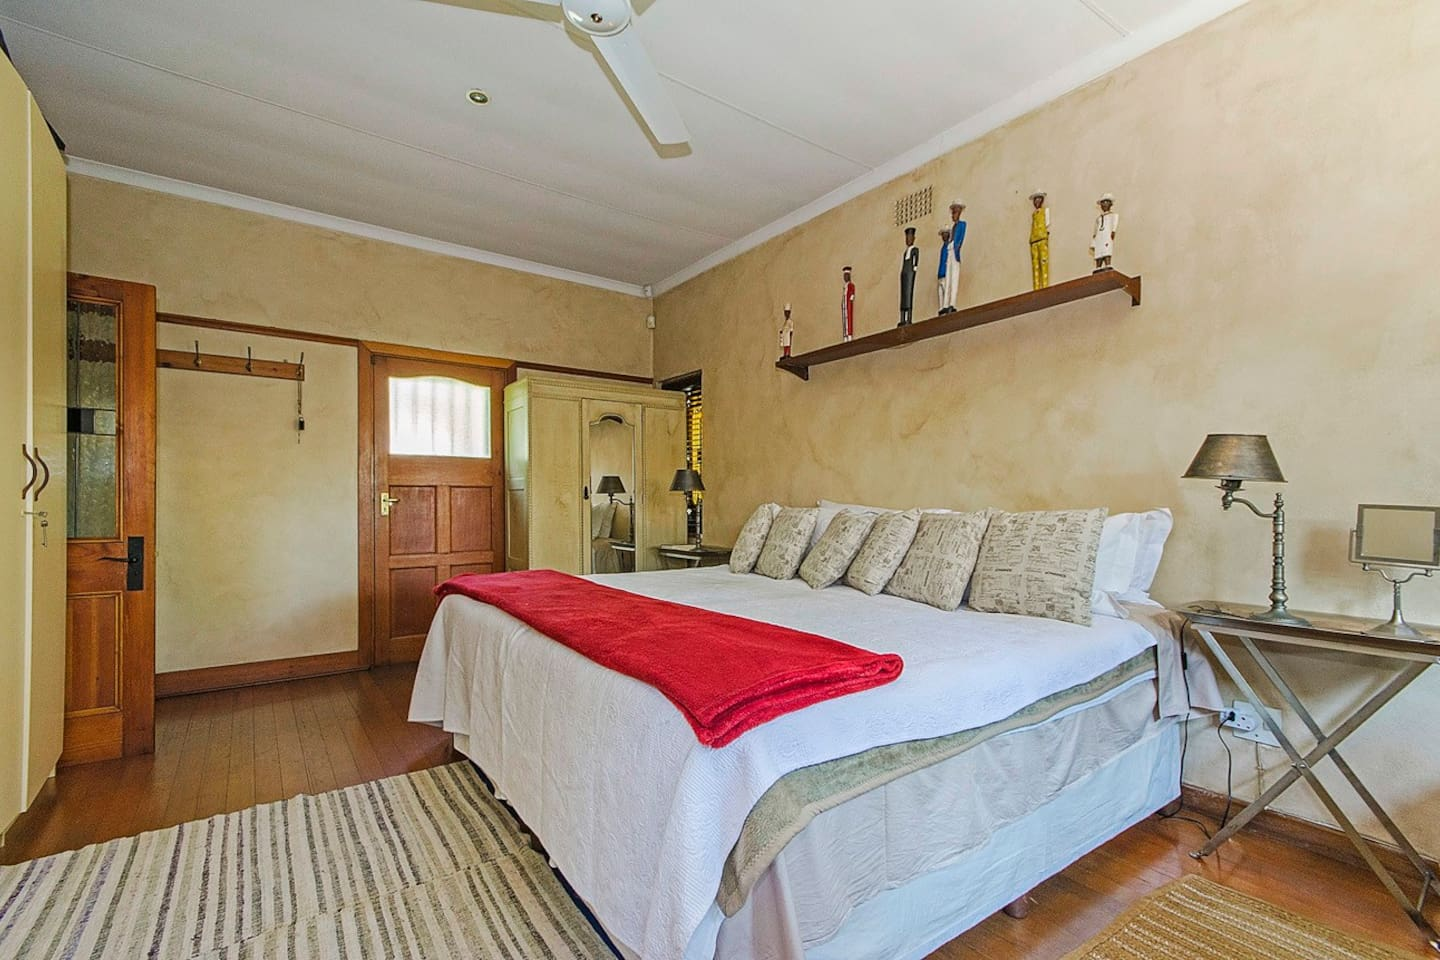 MAIN HOUSE EN SUITE - Separate entrance with modern bathroom and mini kitchen .  Microwave, toaster and kettle.